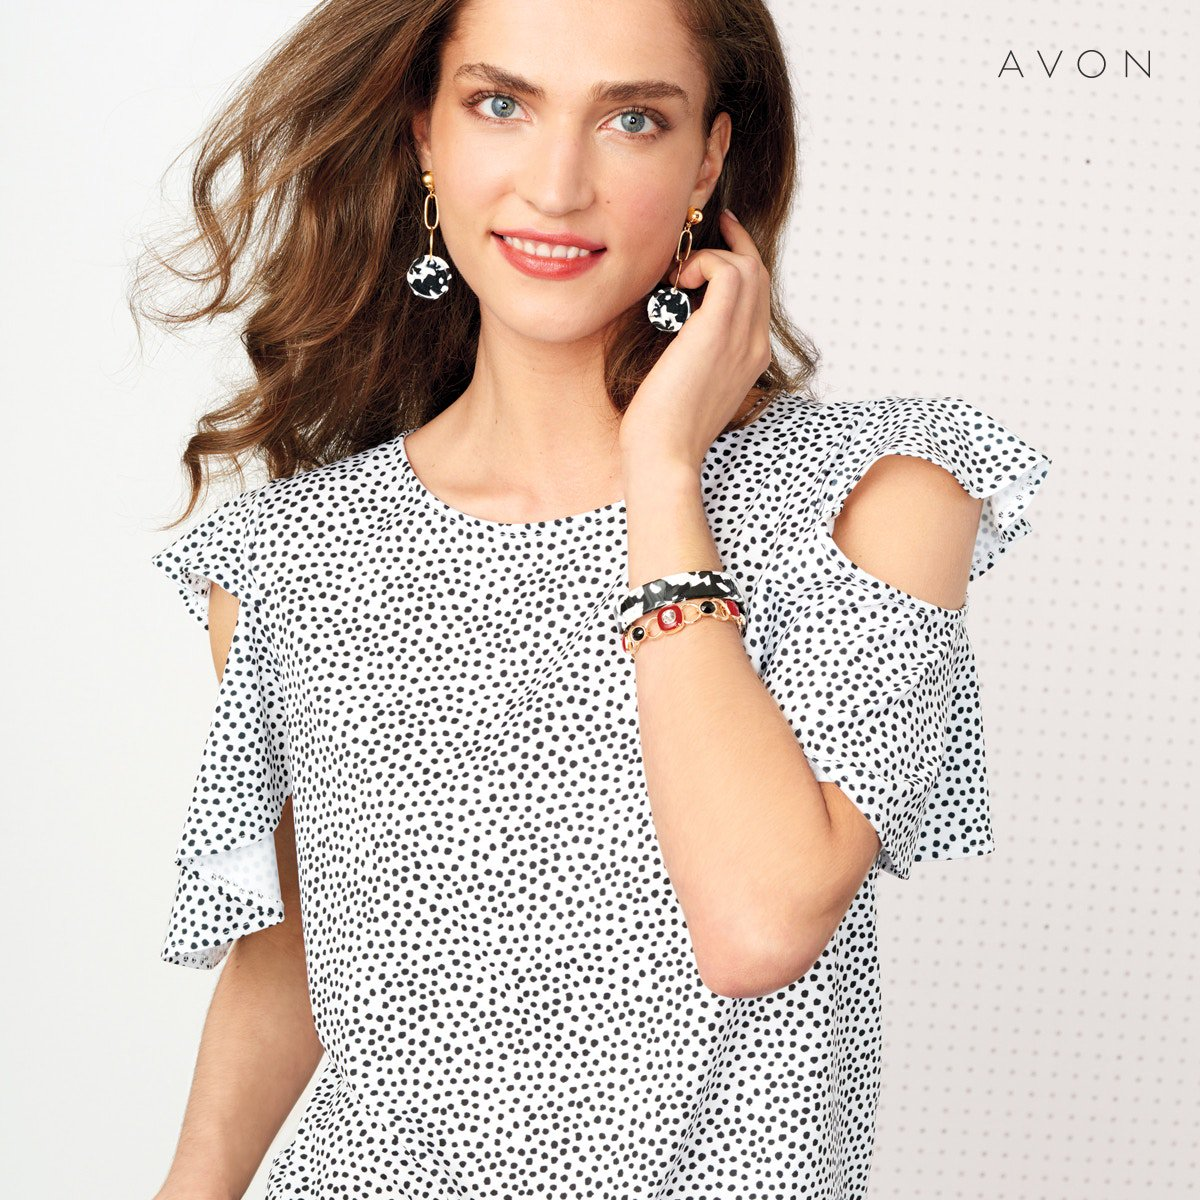 In full bloom! Spring awakens with petal-powered prints, fresh silhouettes and handpicked details.  Shop Online:  http://go.youravon.com/3ds84m  #Womantop #Bluses #Fashion #Womanpic.twitter.com/elhK5lHhhA